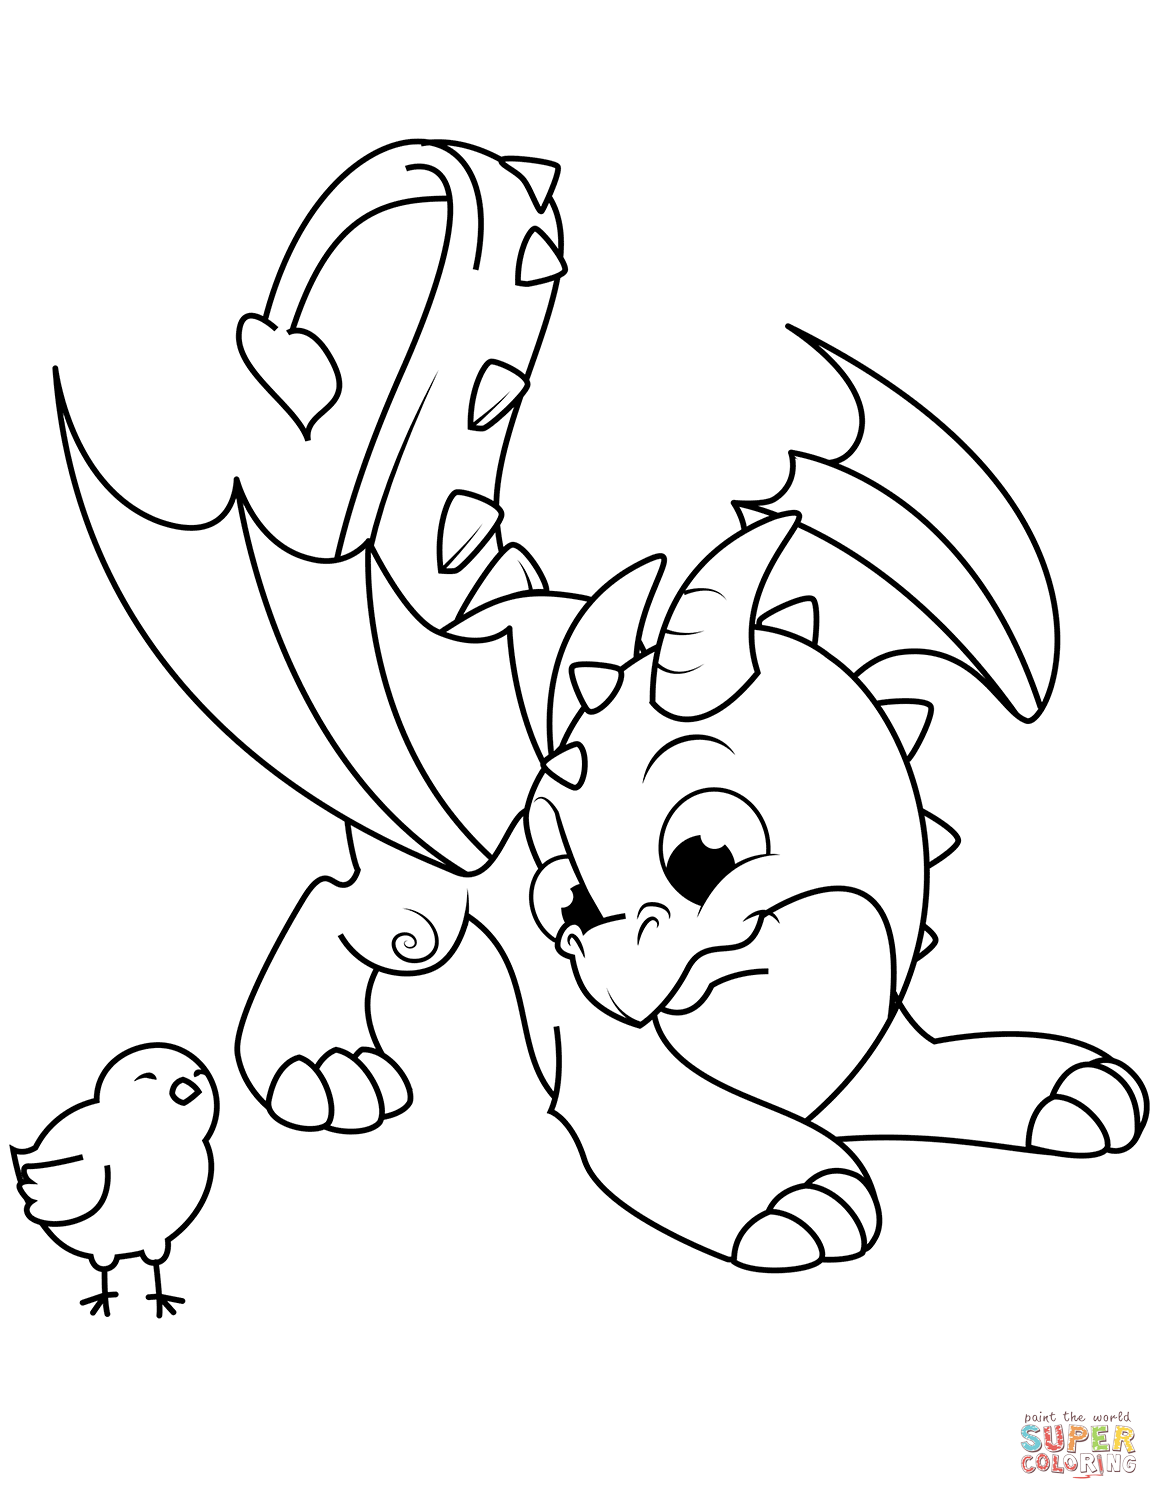 The Best Free Icewing Coloring Page Images Download From